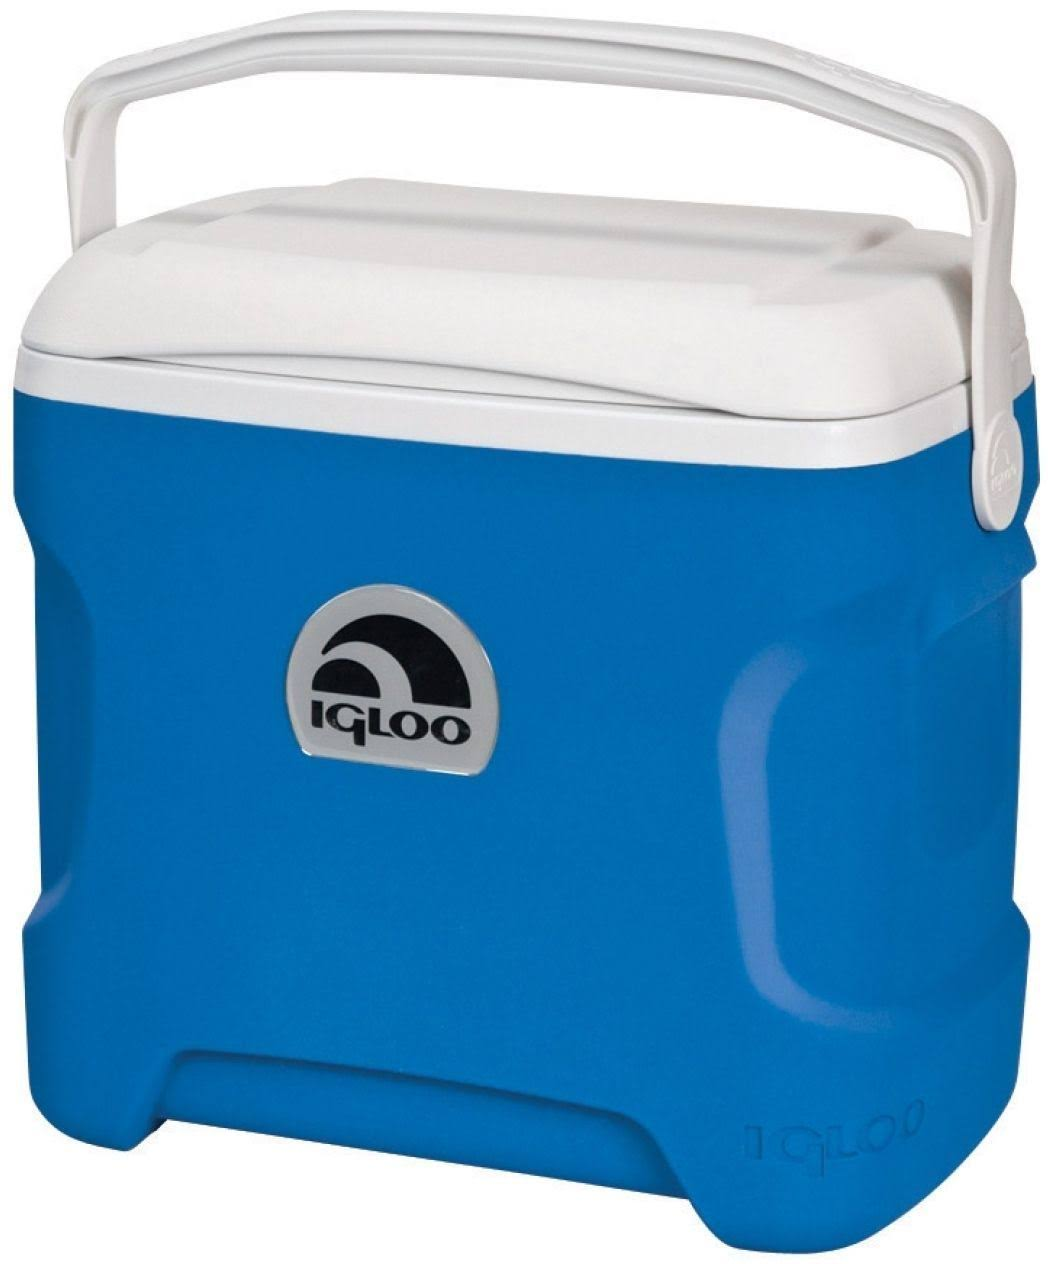 Igloo Contour Cooler - Blue and White, 30qt